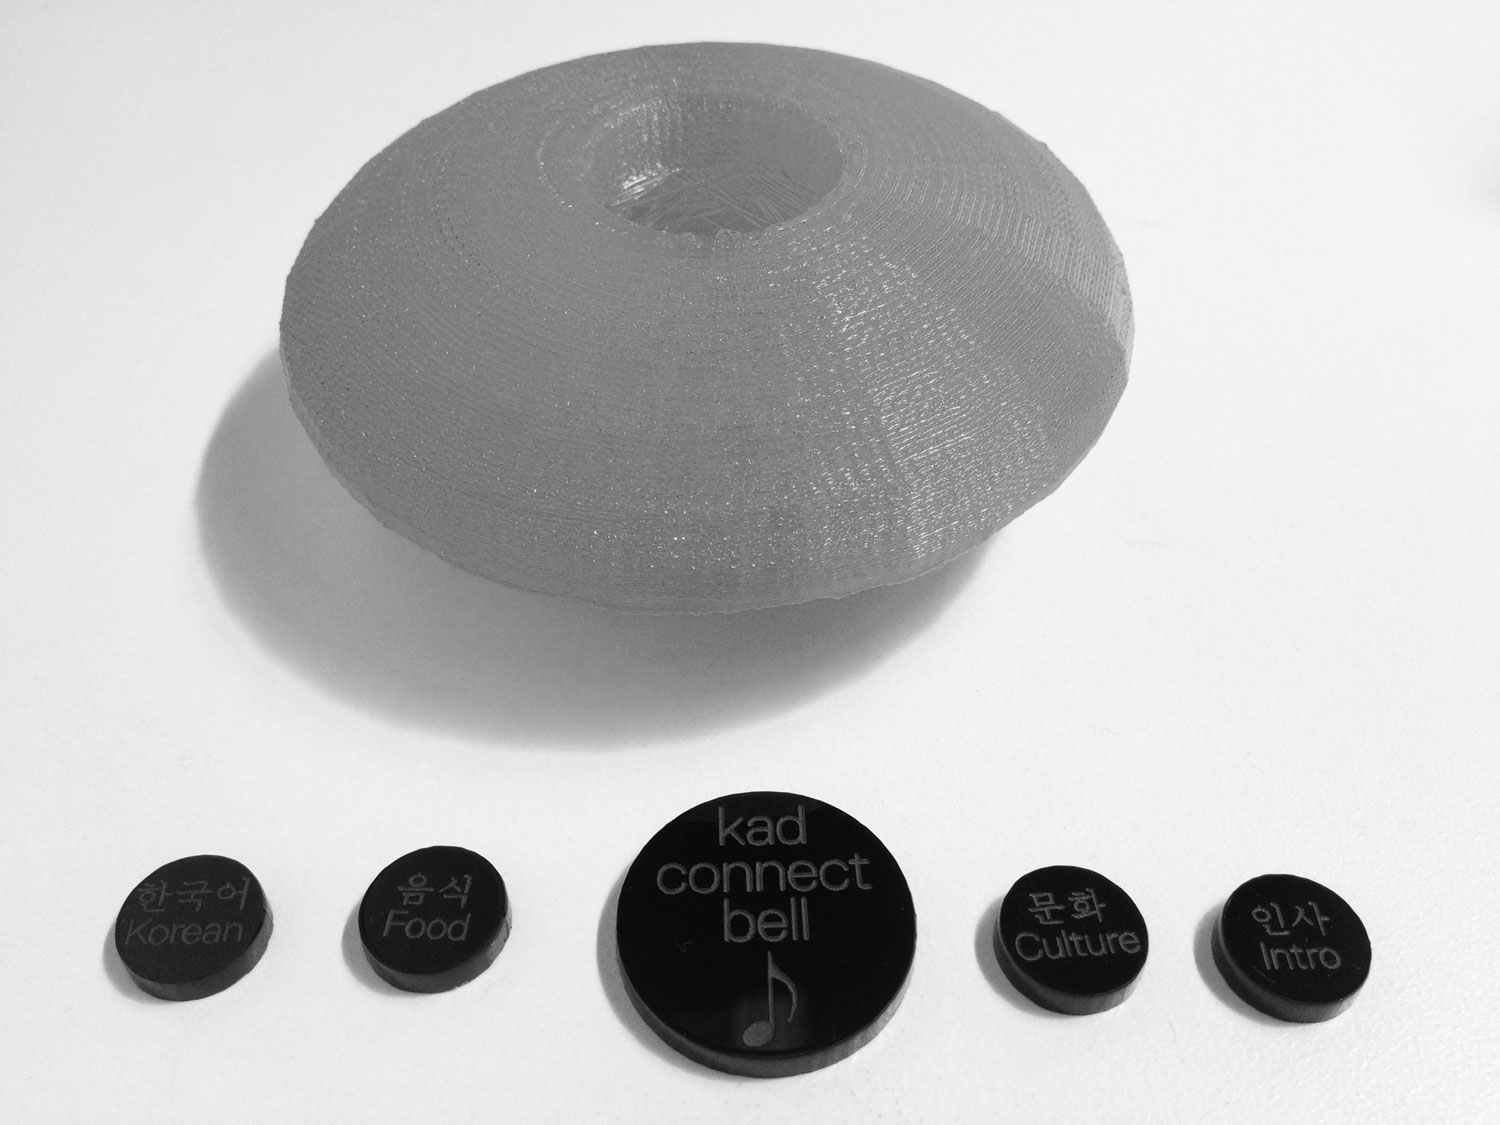 Laser-cut buttons show topics ranging from immediate questions to individual histories.